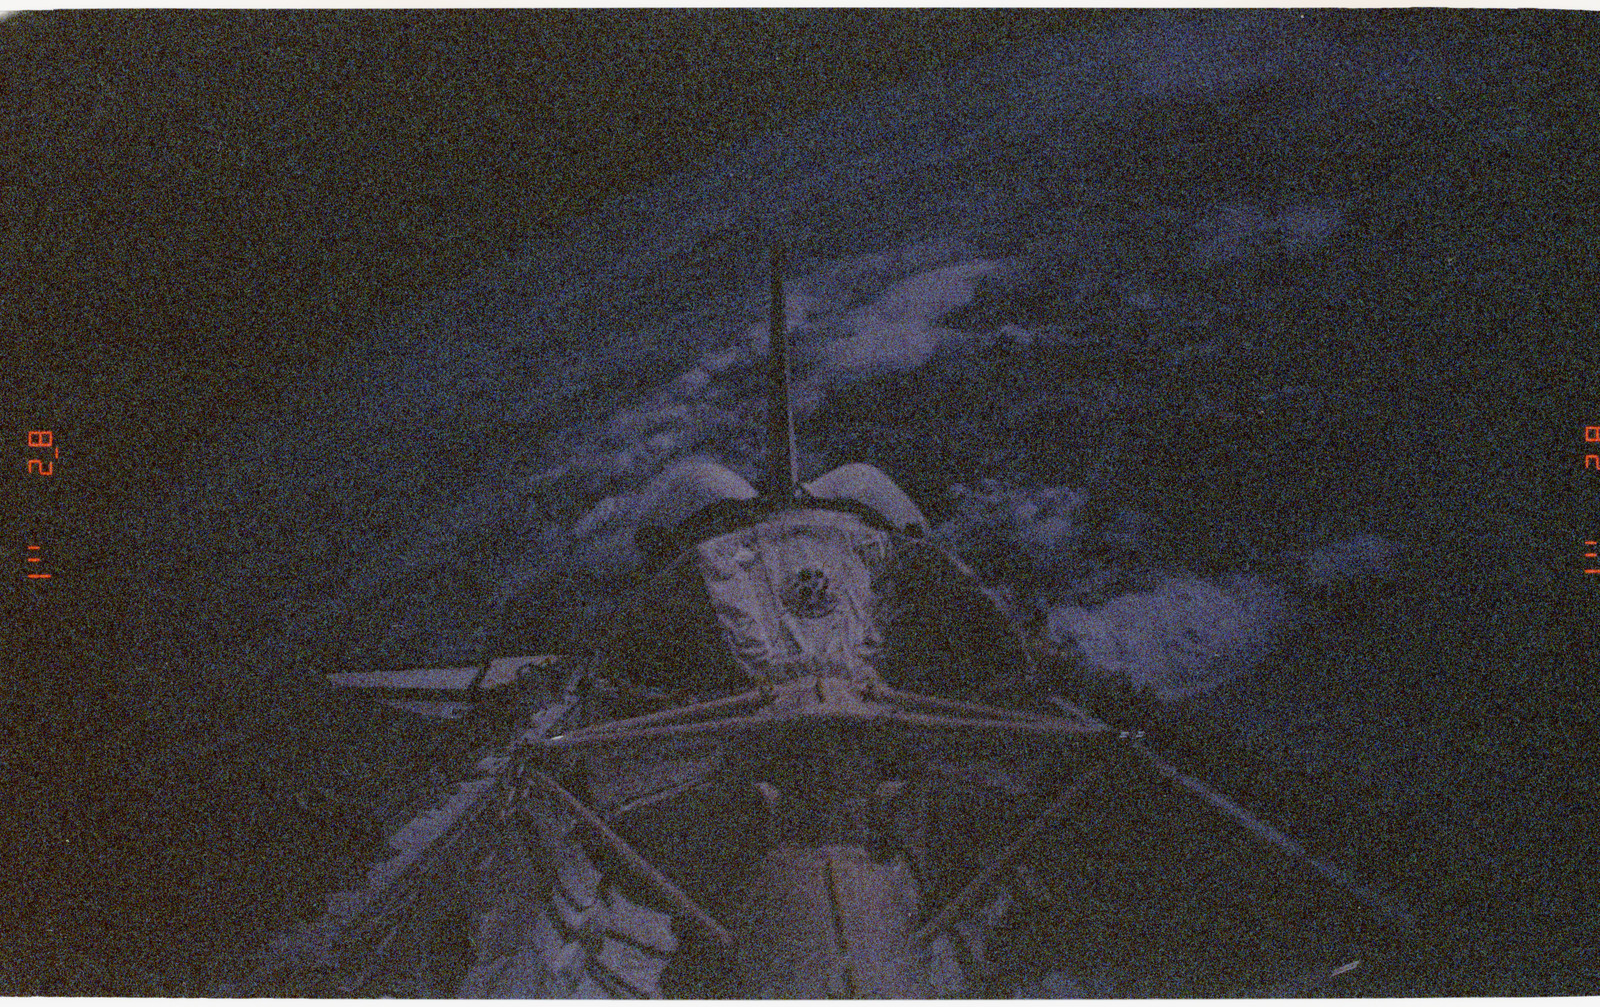 STS055-27-005 - STS-055 - Earth Limb, D-2 Spacelab and Payload Bay.